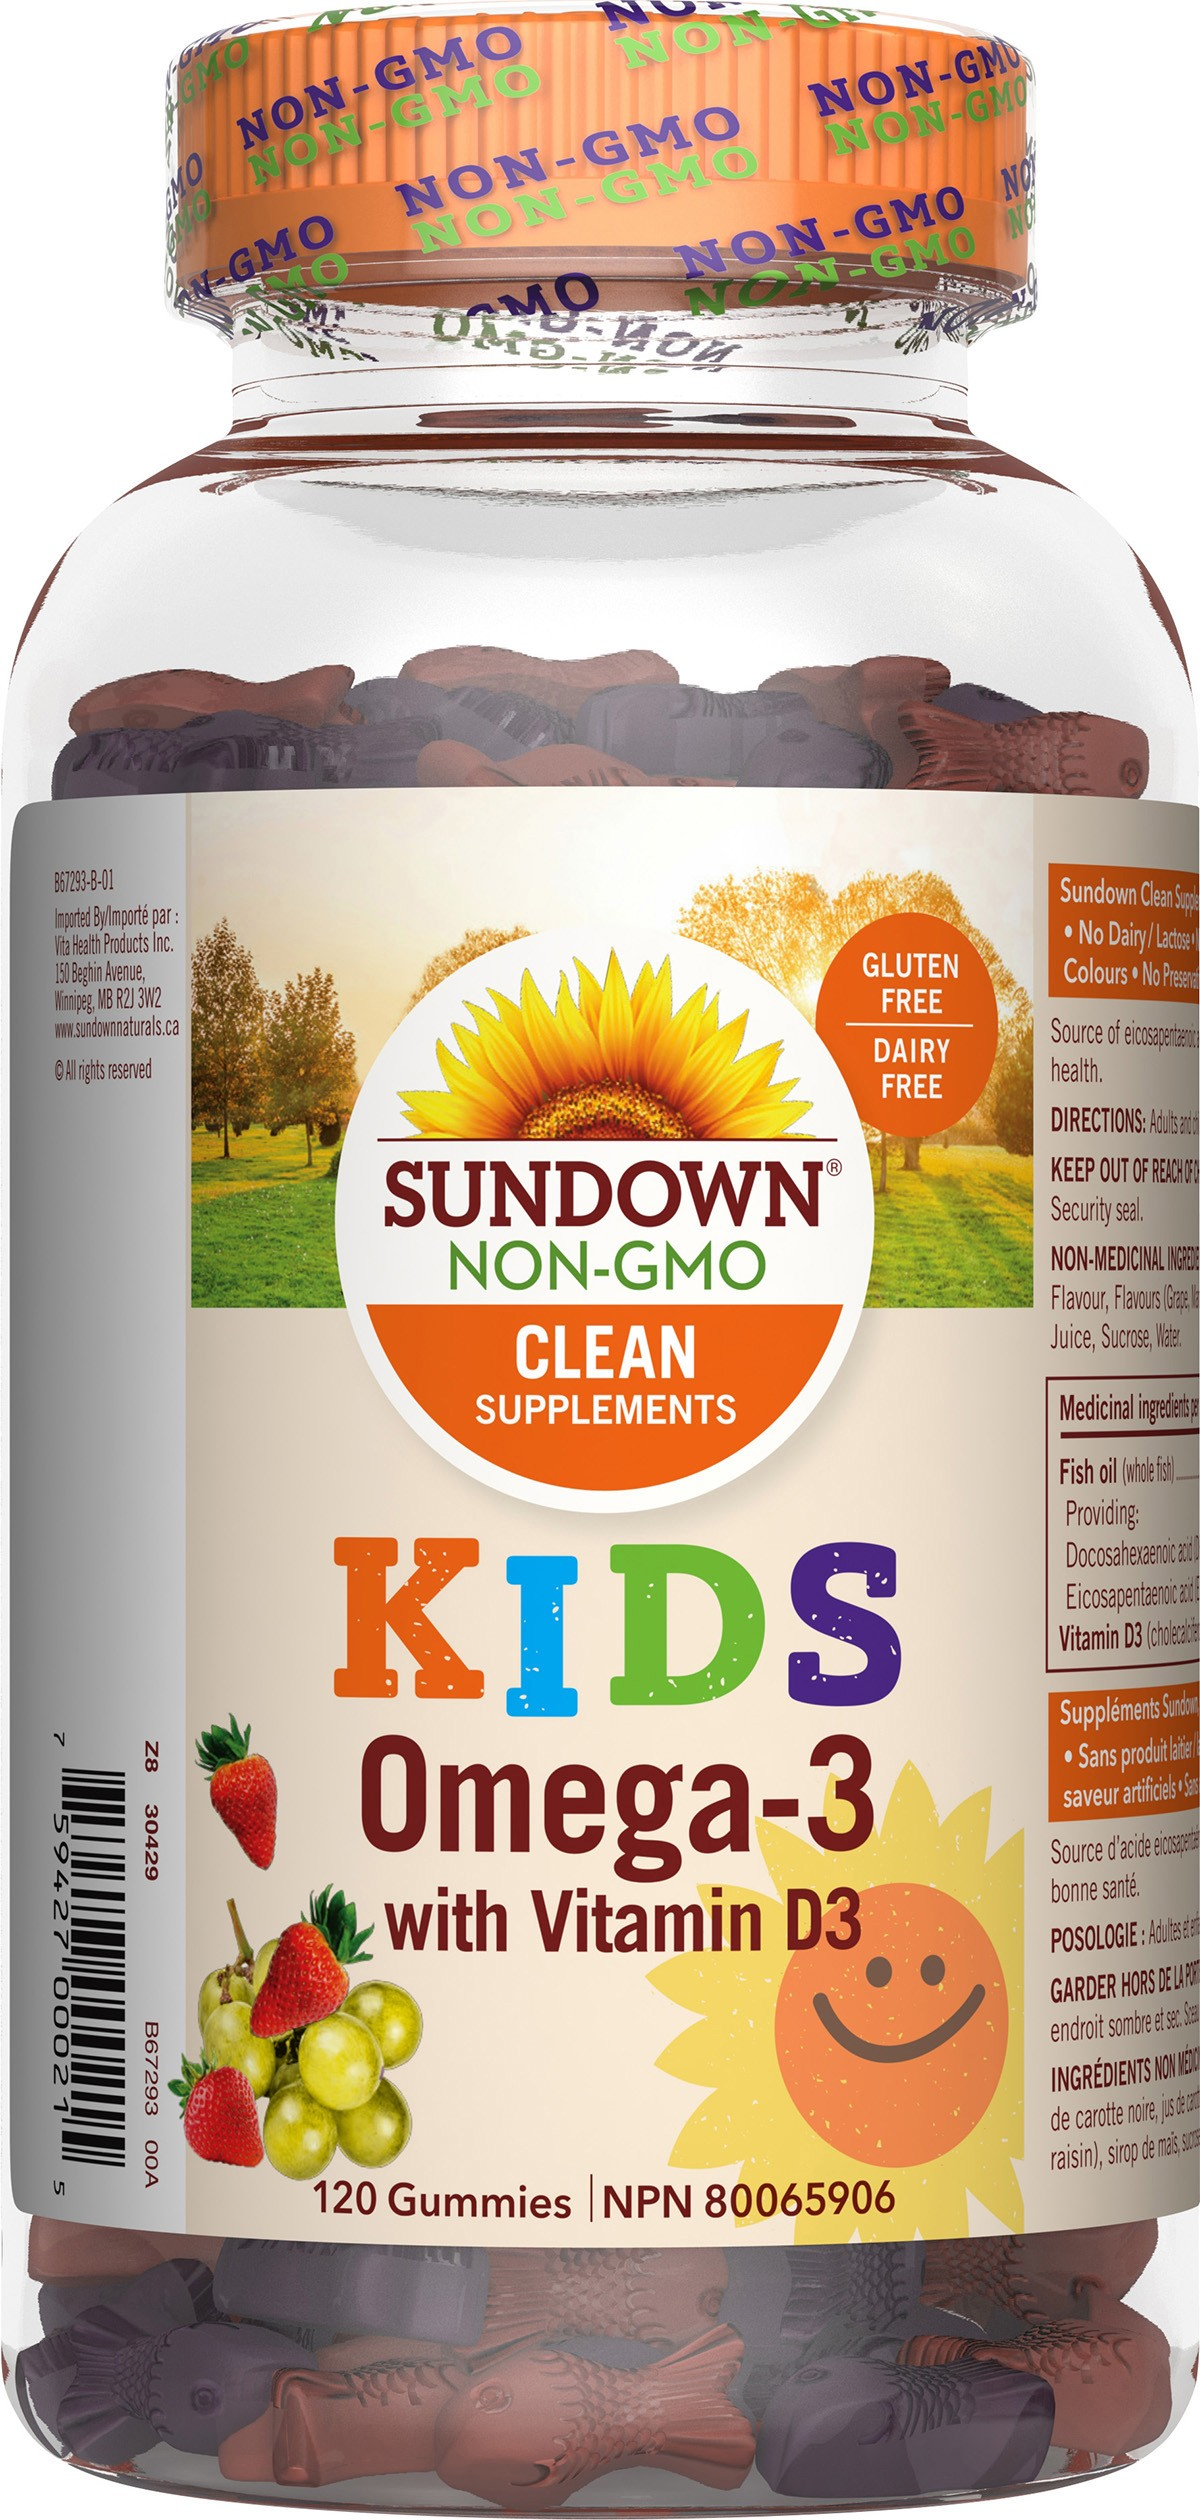 Omega-3 with Vitamin D3 Gummies